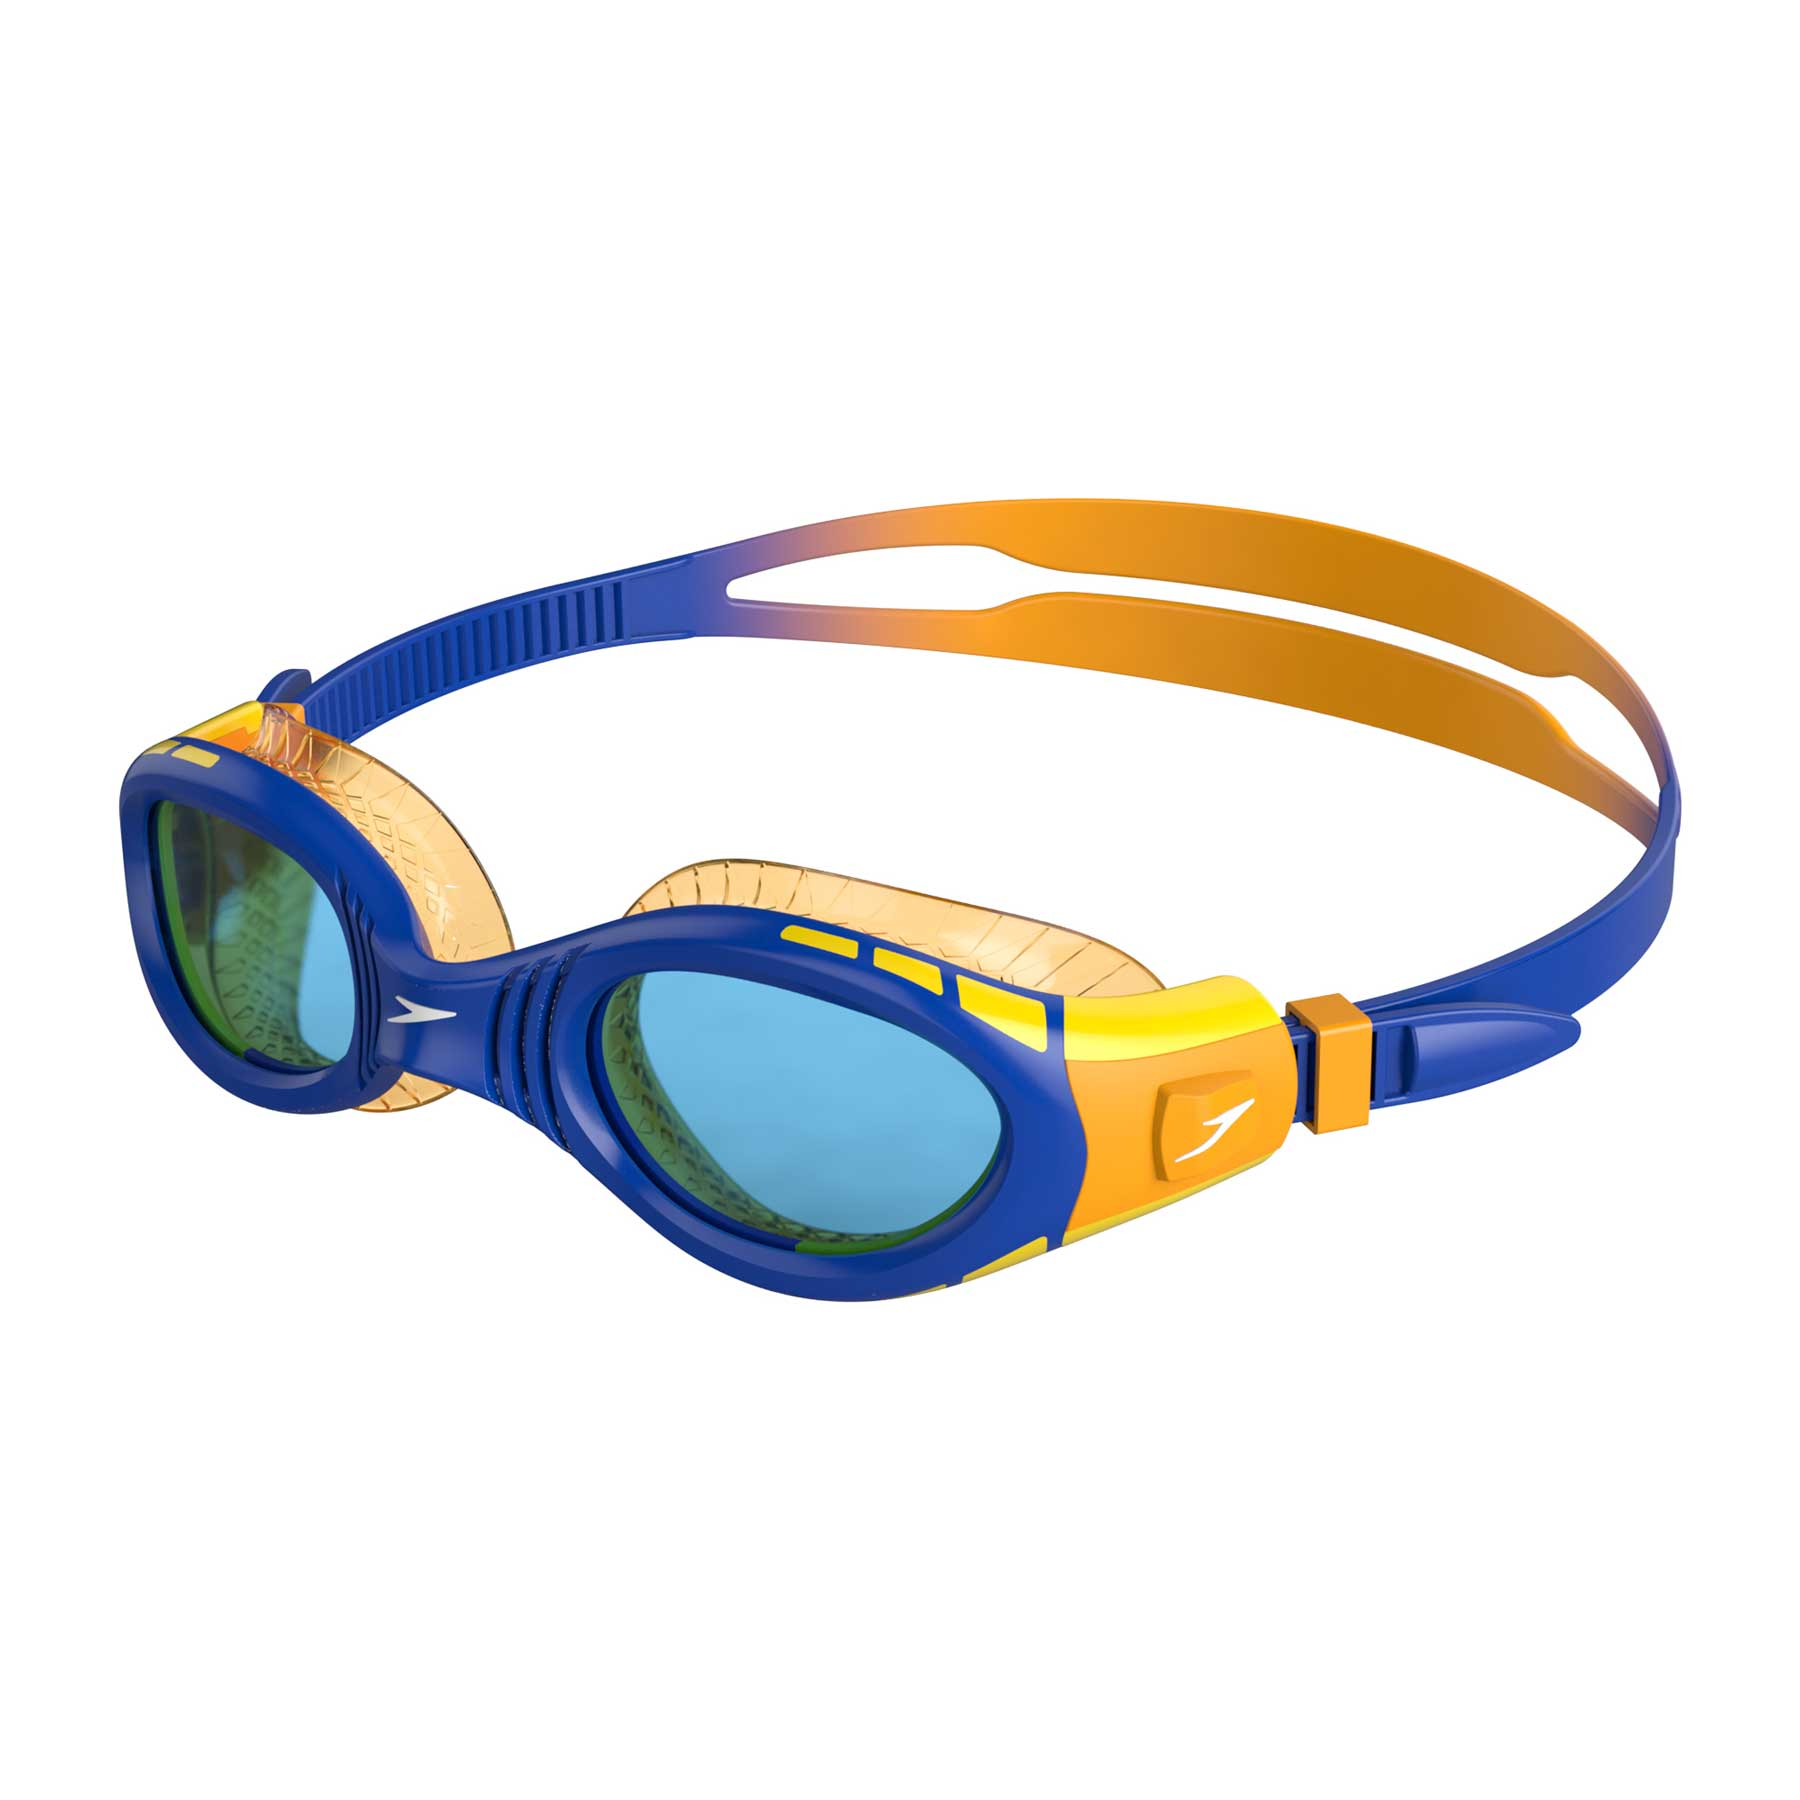 Speedo Junior Flexiseal Goggles - Blue/Mango